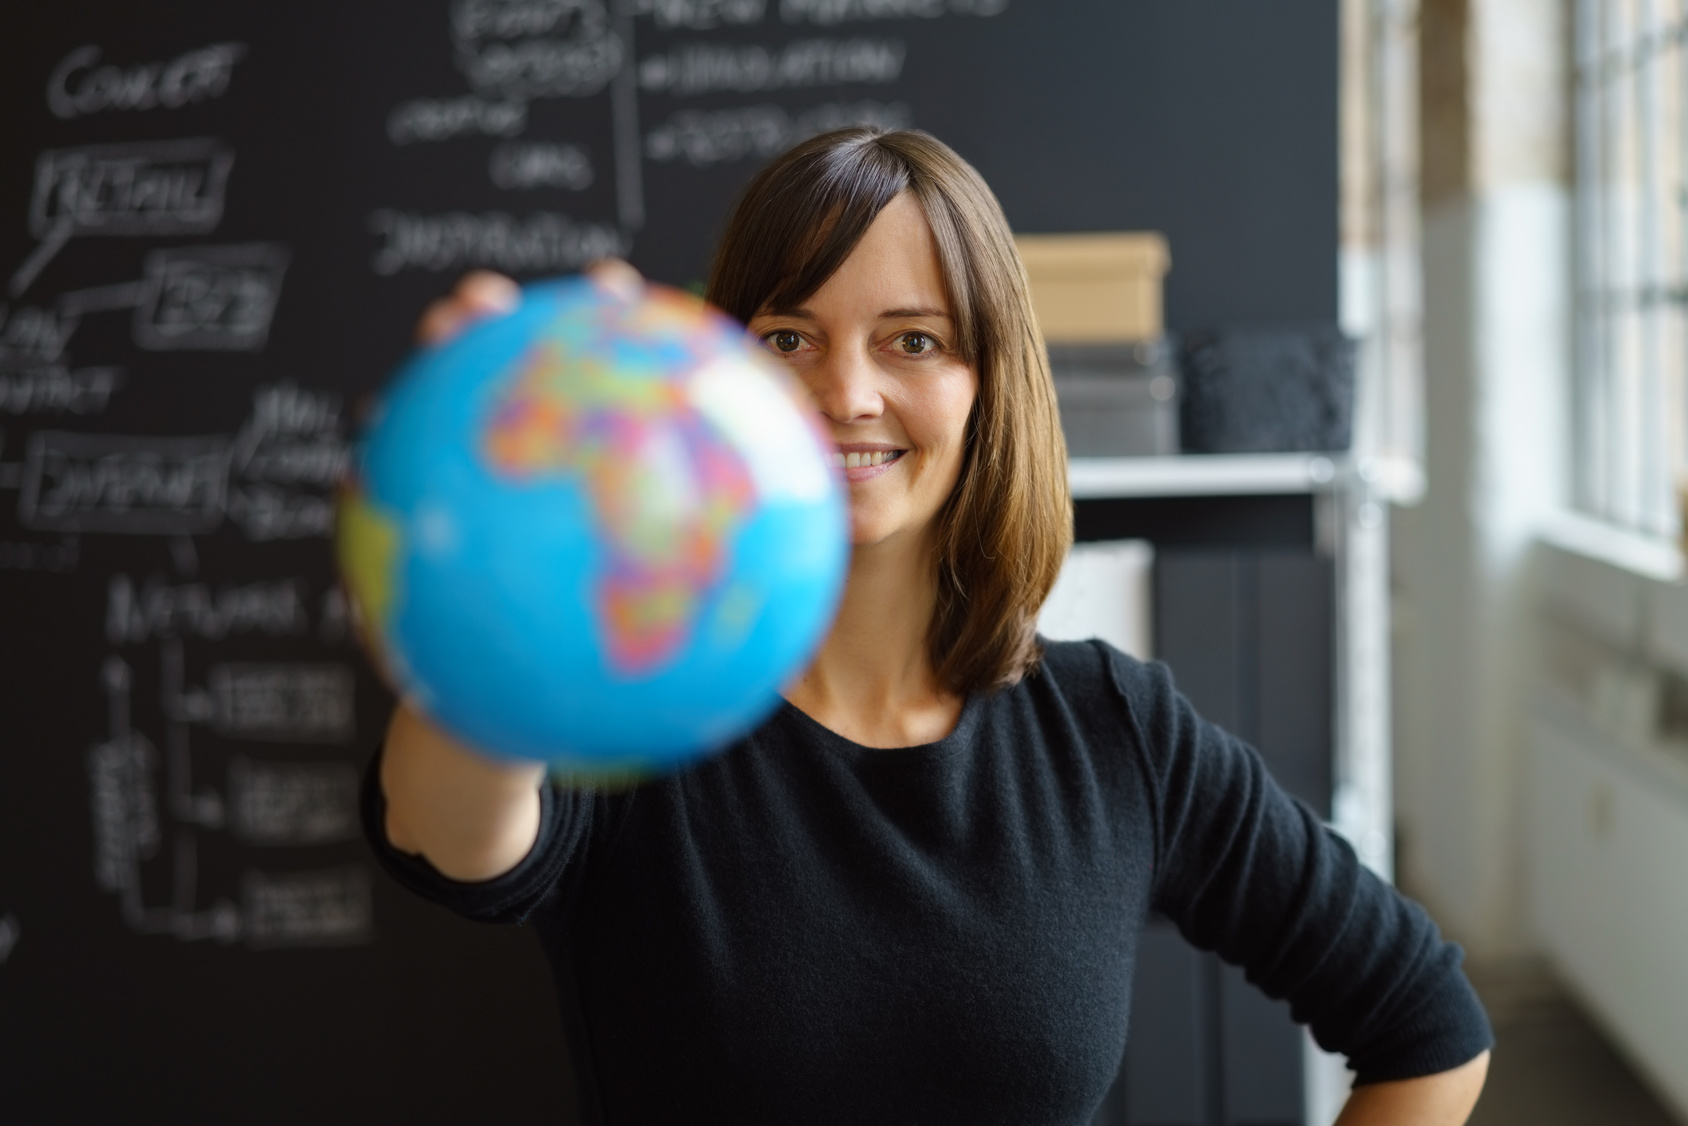 woman in a classroom holding a globe